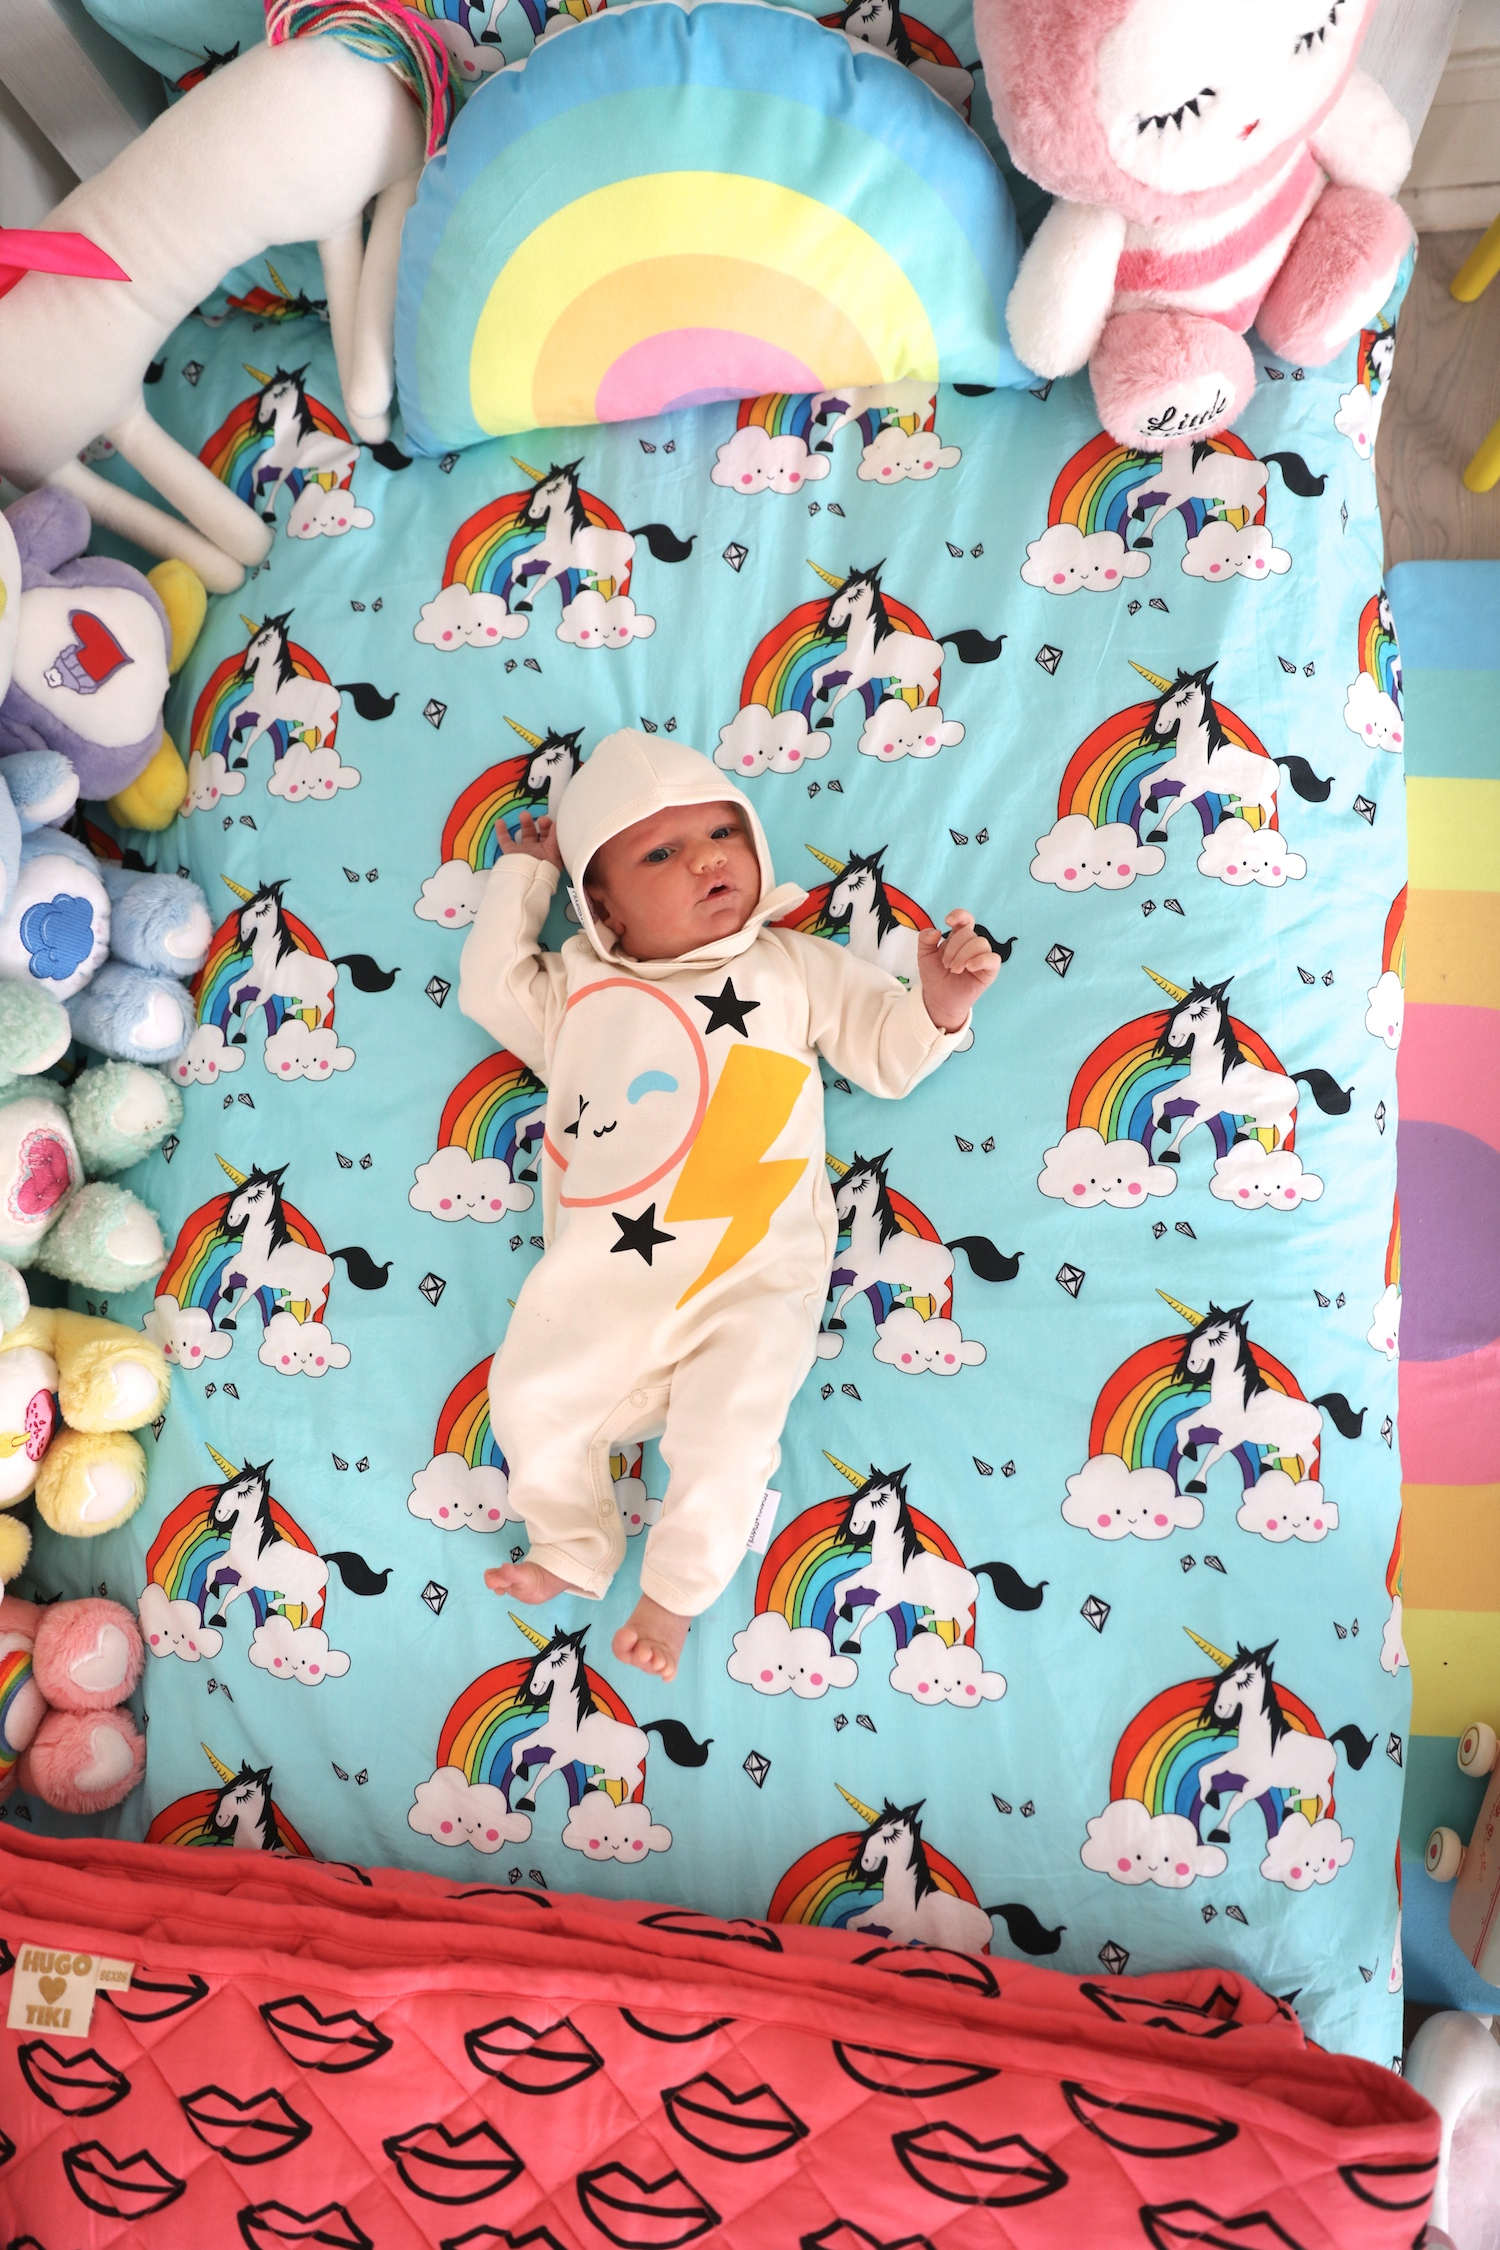 love_frankie_dot_com_rainbows_unicorn_duvet_bedding_moobles_toobles_baby